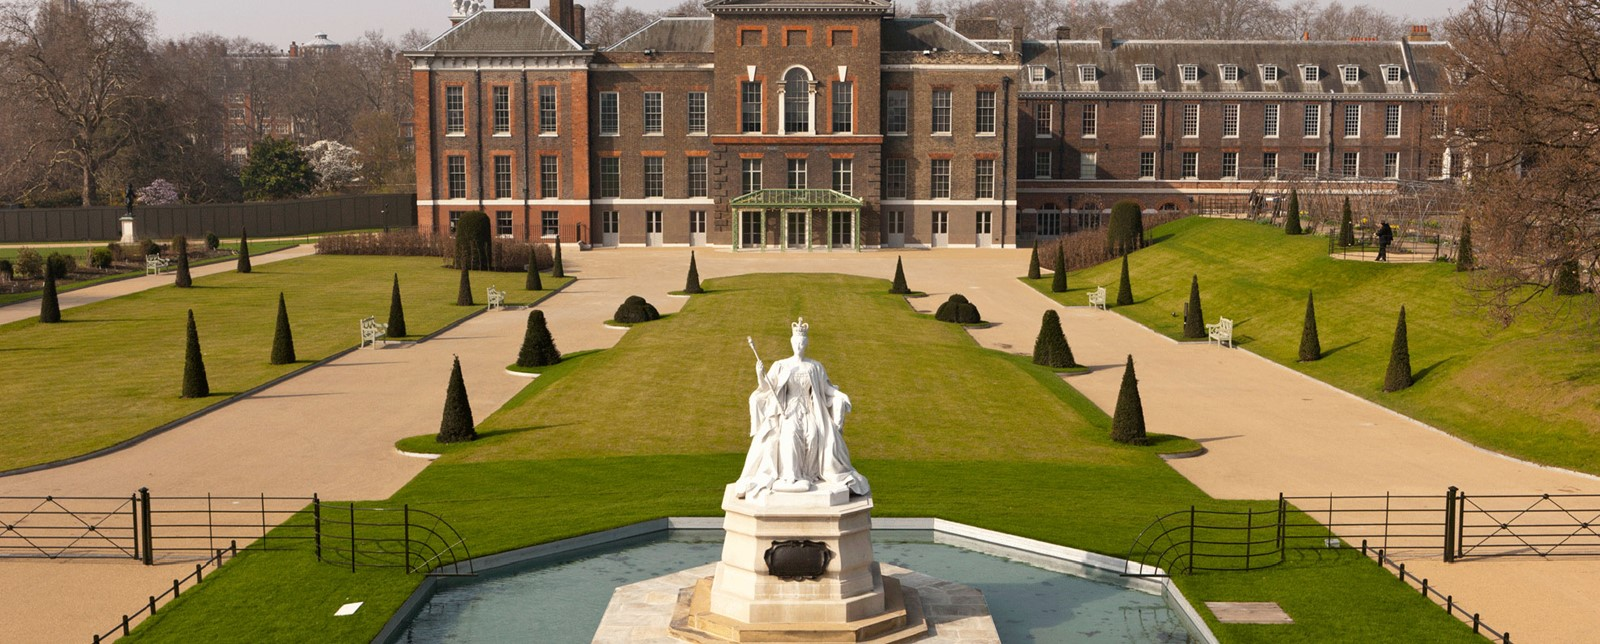 Kensington Palace and its front lawn